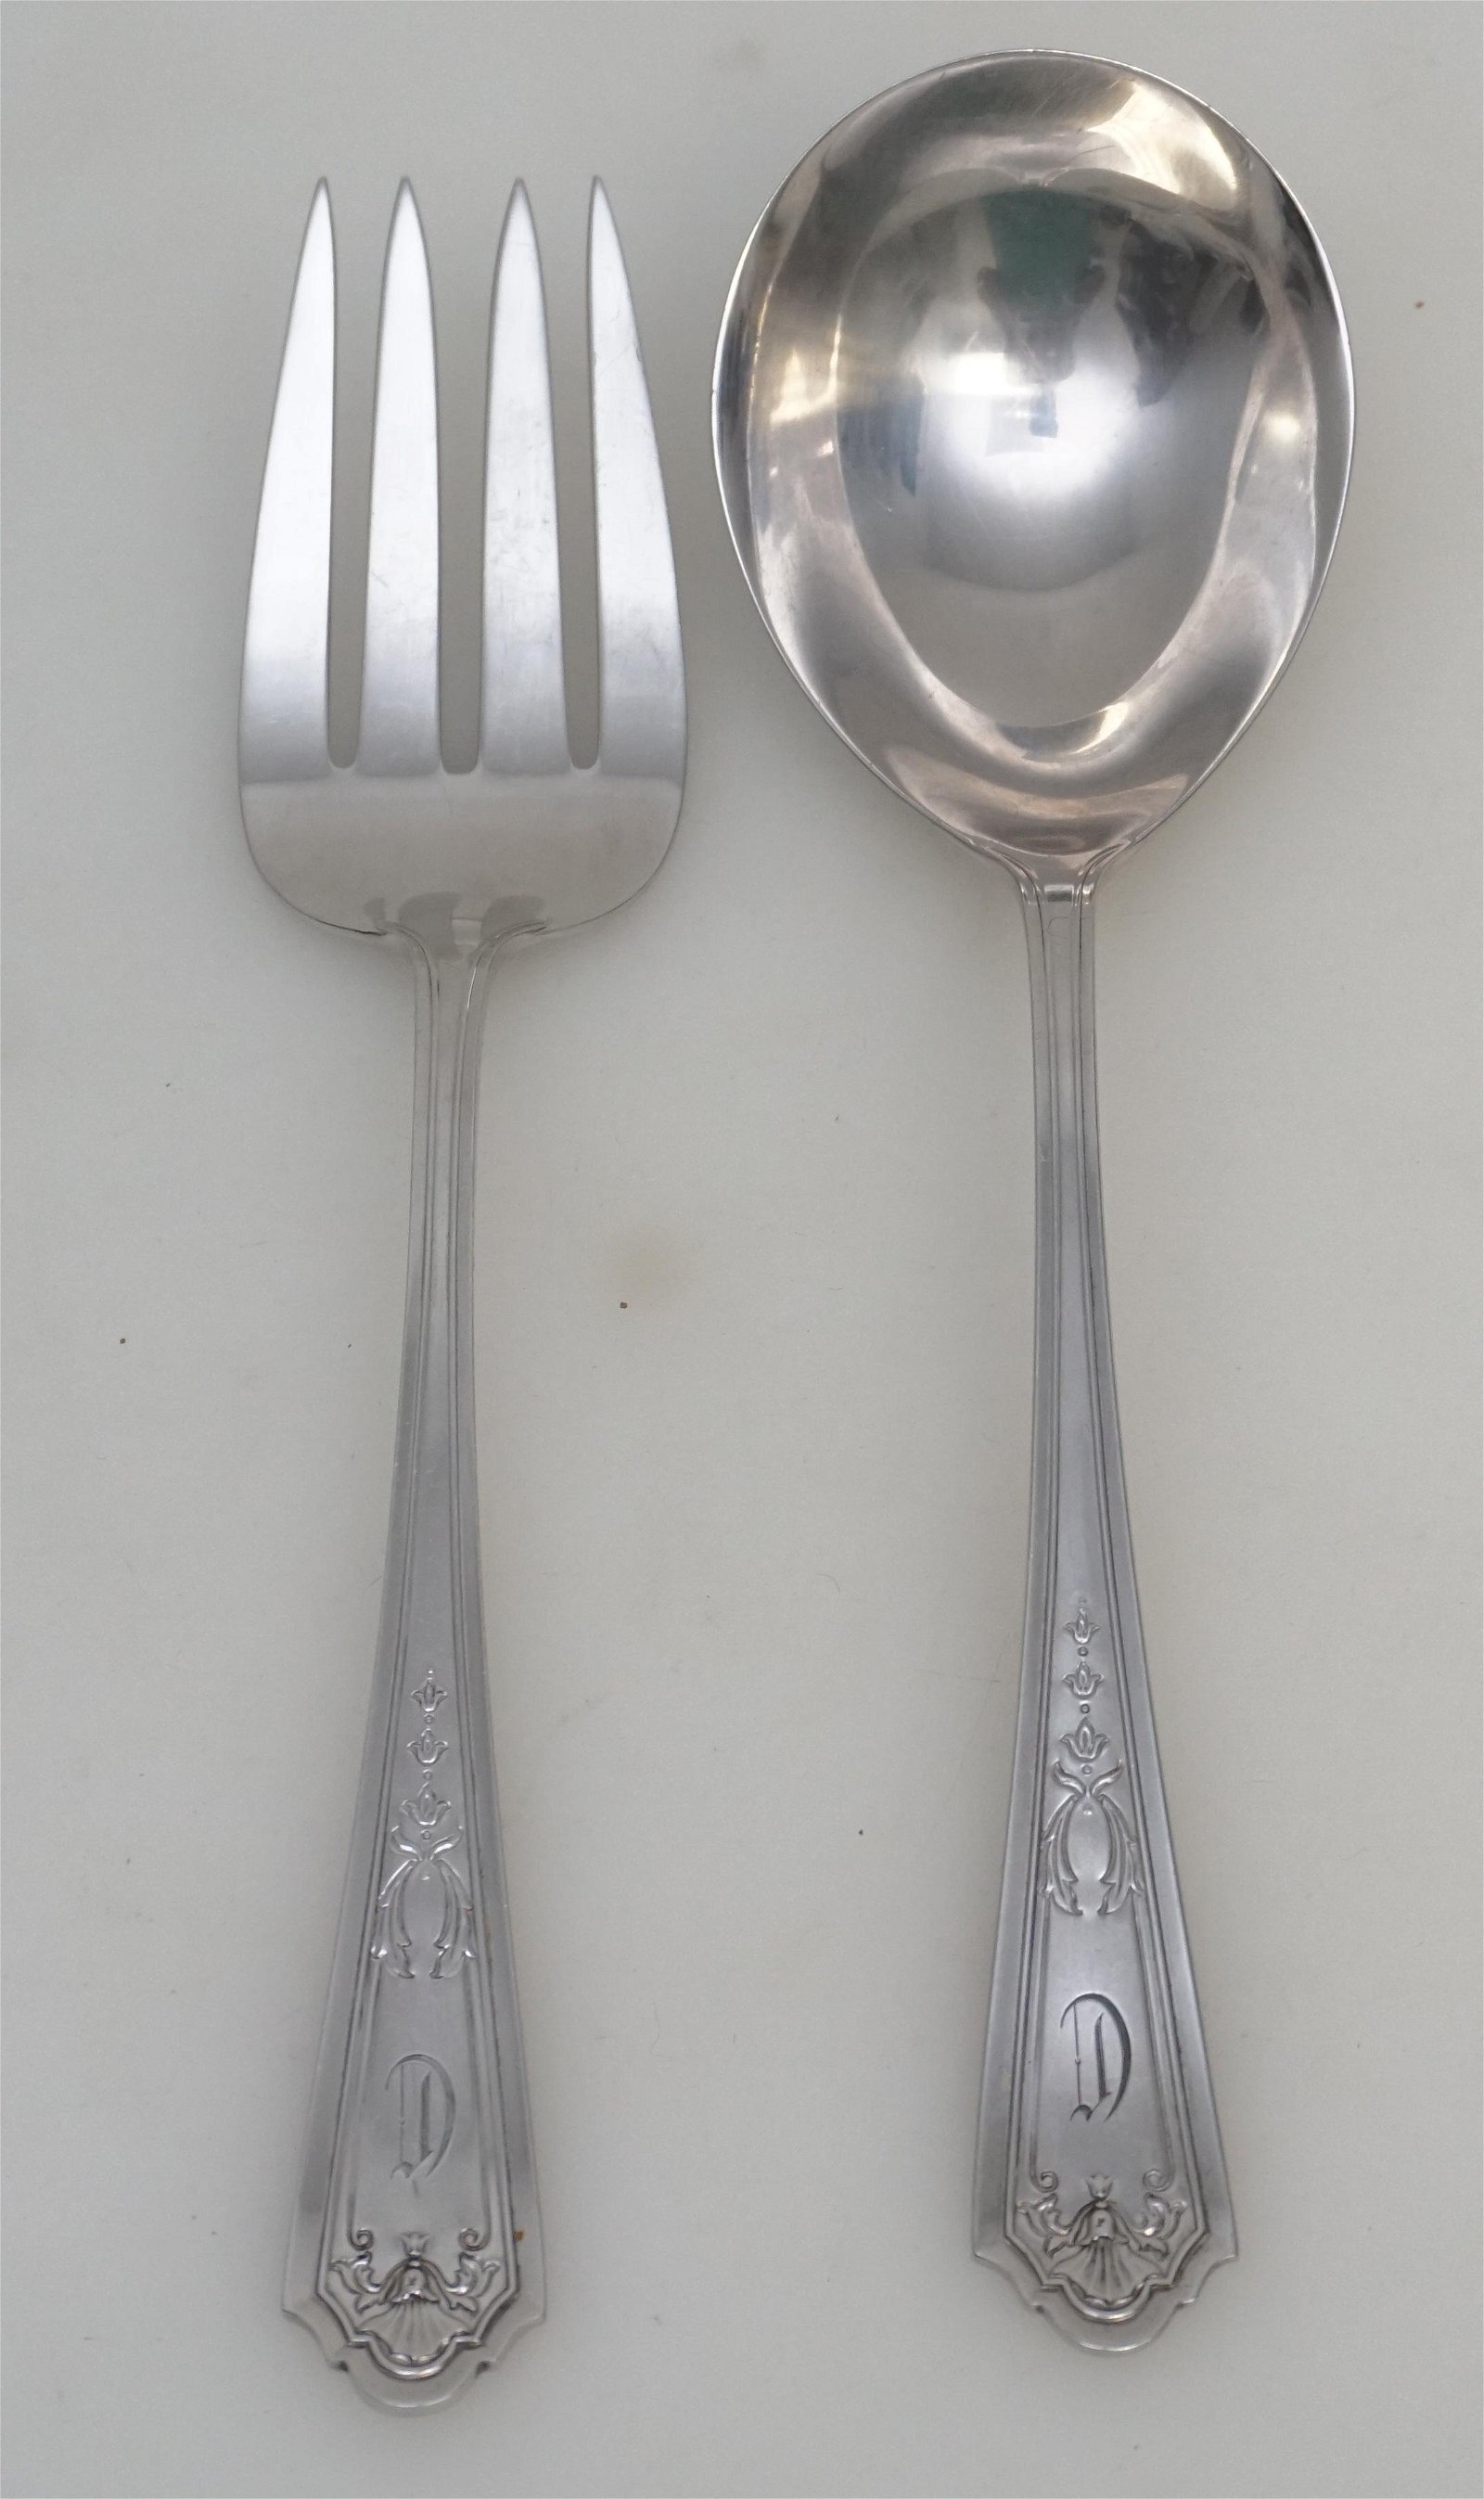 2 STERLING SILVER 1912 QUEEN LOUISE SALAD SET